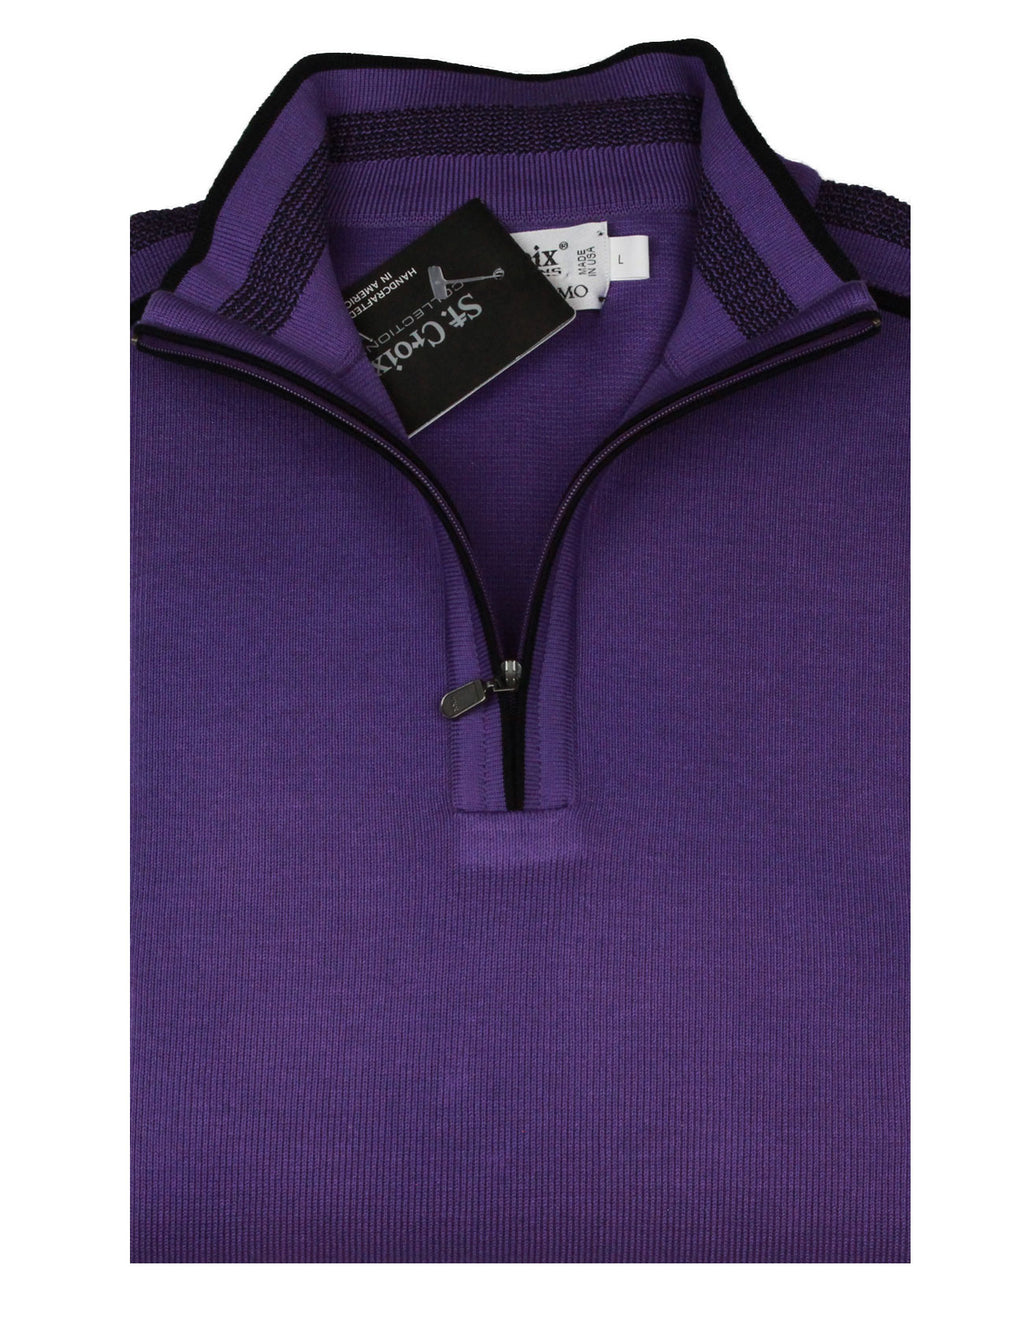 St Croix Sweater Zip Mock  Empire